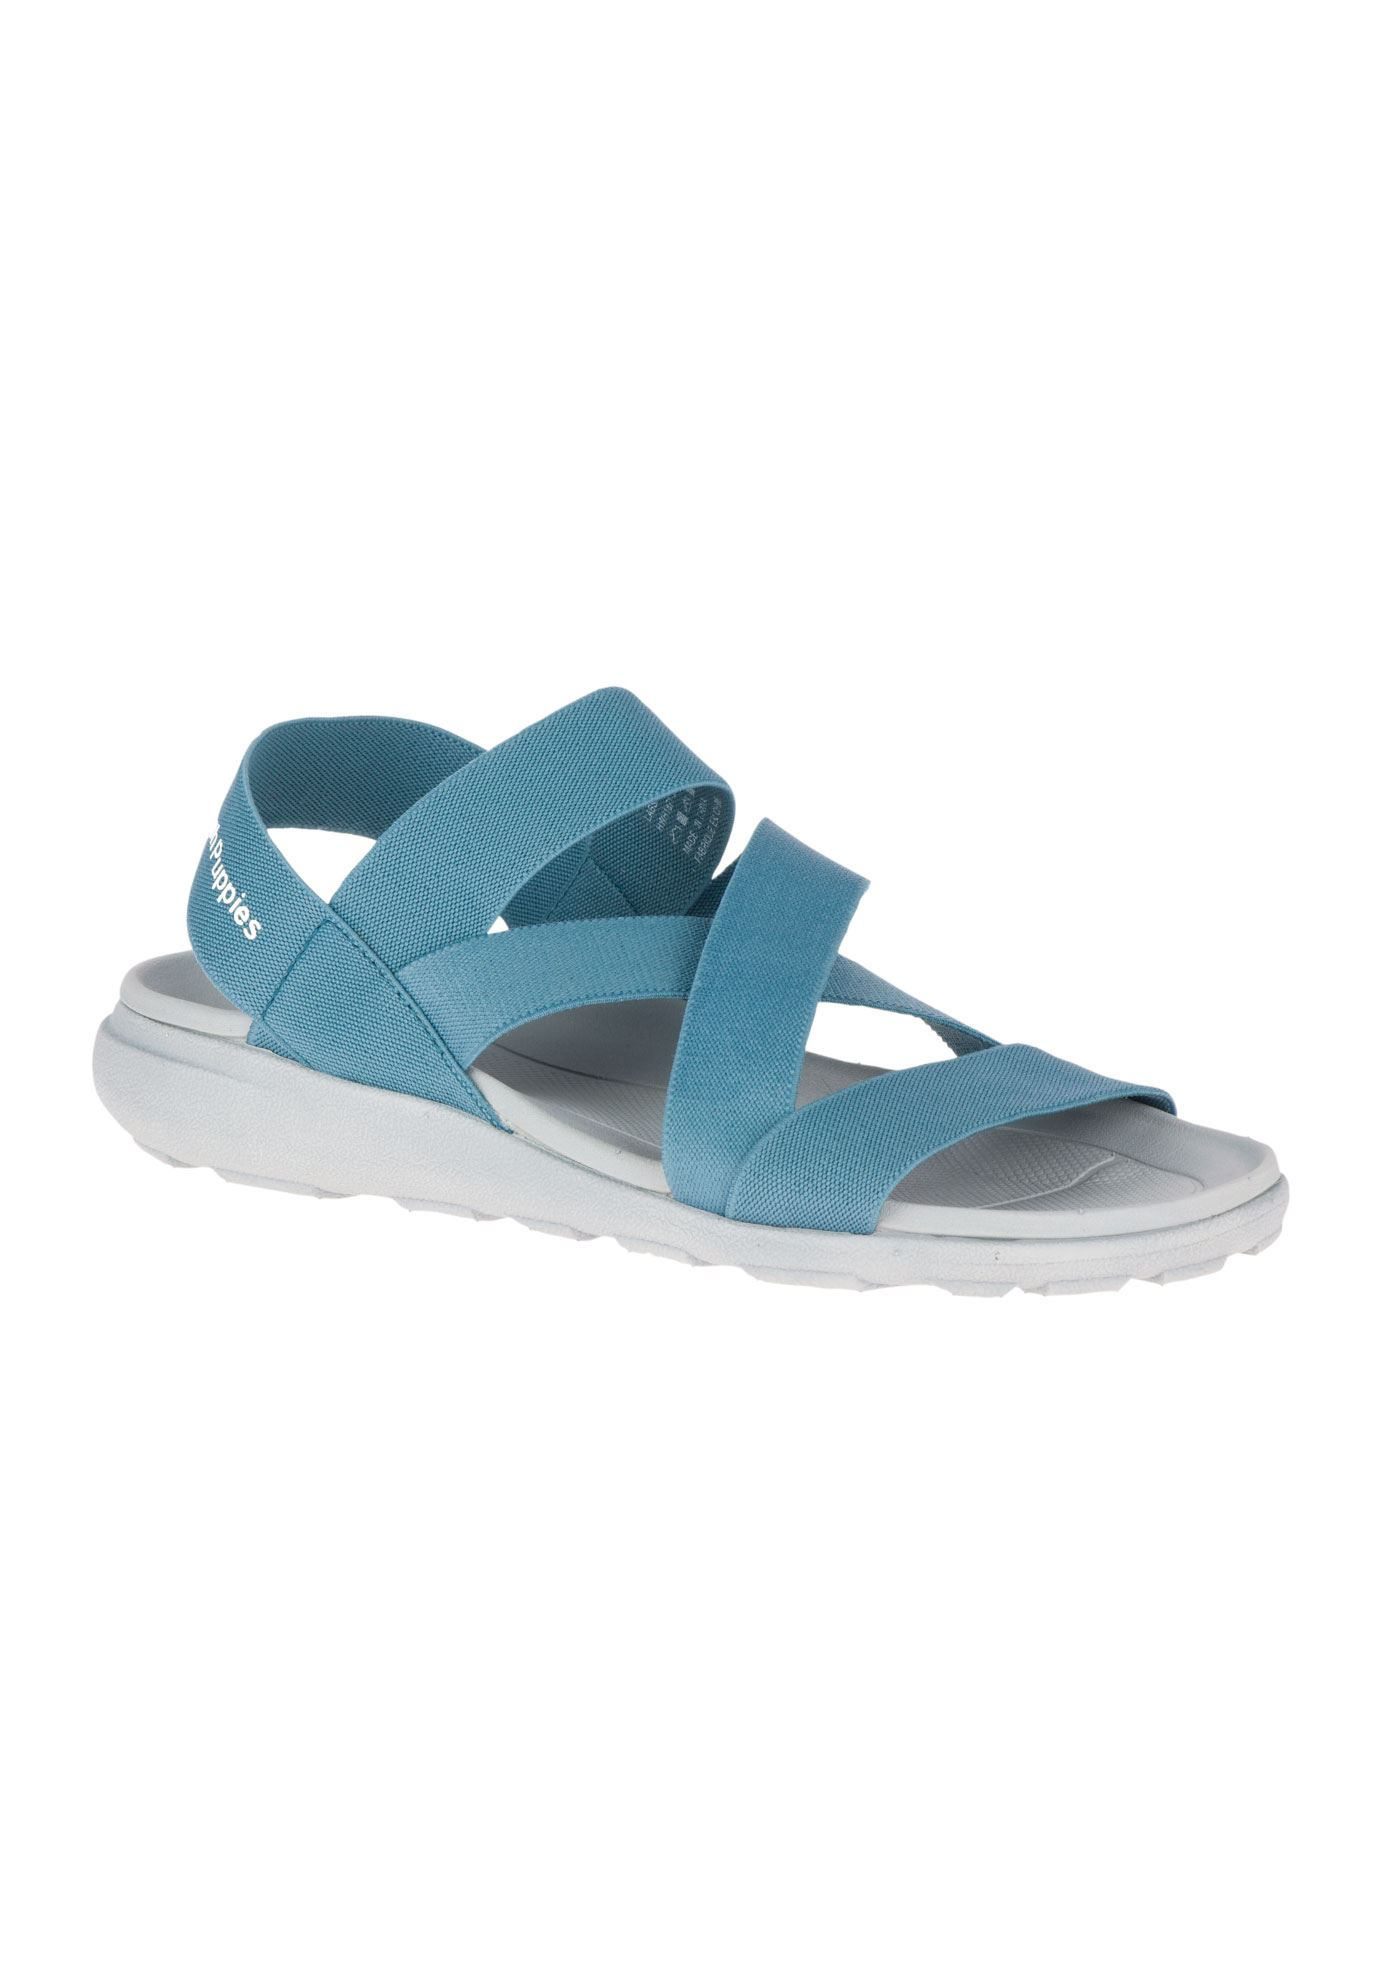 Labsky Elastic Sandals by Hush Puppies®,